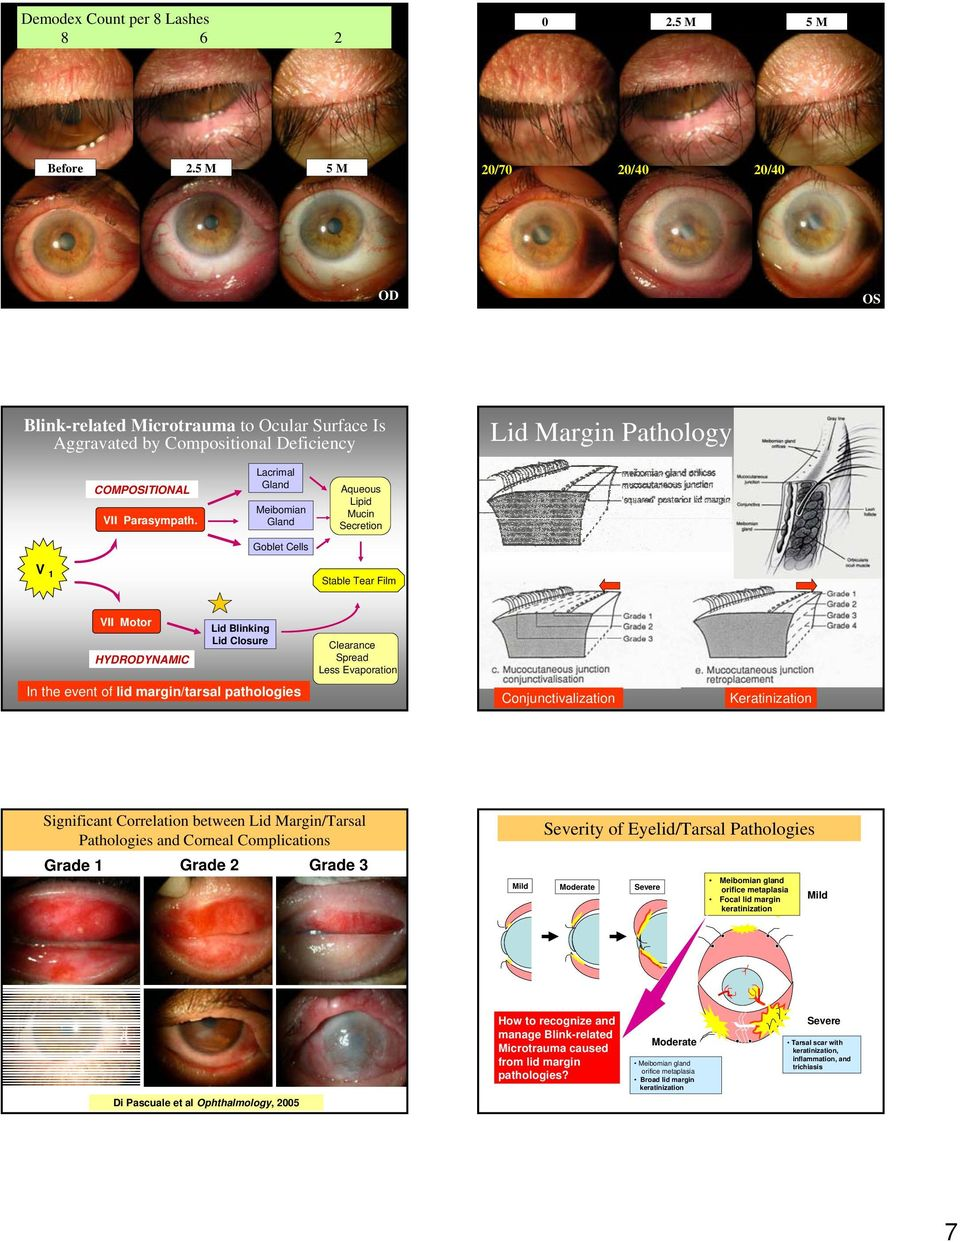 Conjunctivalization Keratinization Significant Correlation between Lid Margin/Tarsal Pathologies and Corneal Complications Grade 1 Grade 2 Grade 3 Mild Severity of Eyelid/Tarsal Pathologies